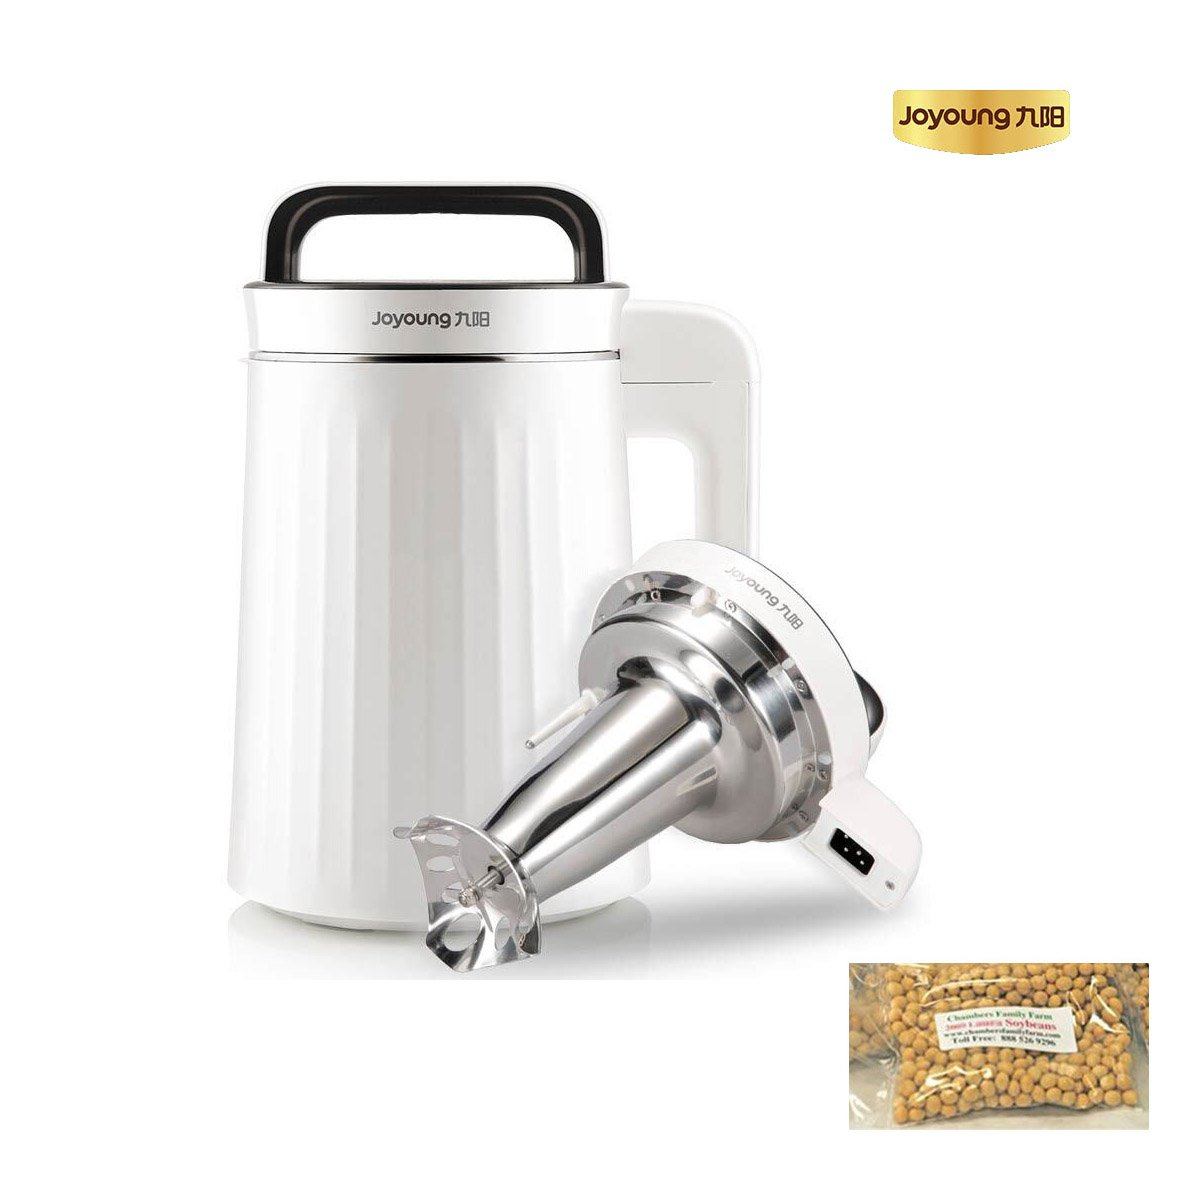 [Official] BONUS PACK! Joyoung DJ13U-G91 Easy-Clean With Warming Feature Automatic Hot Soy Milk Maker with FREE Soybean Bonus Pack - 1 Year Official Warranty Coverage